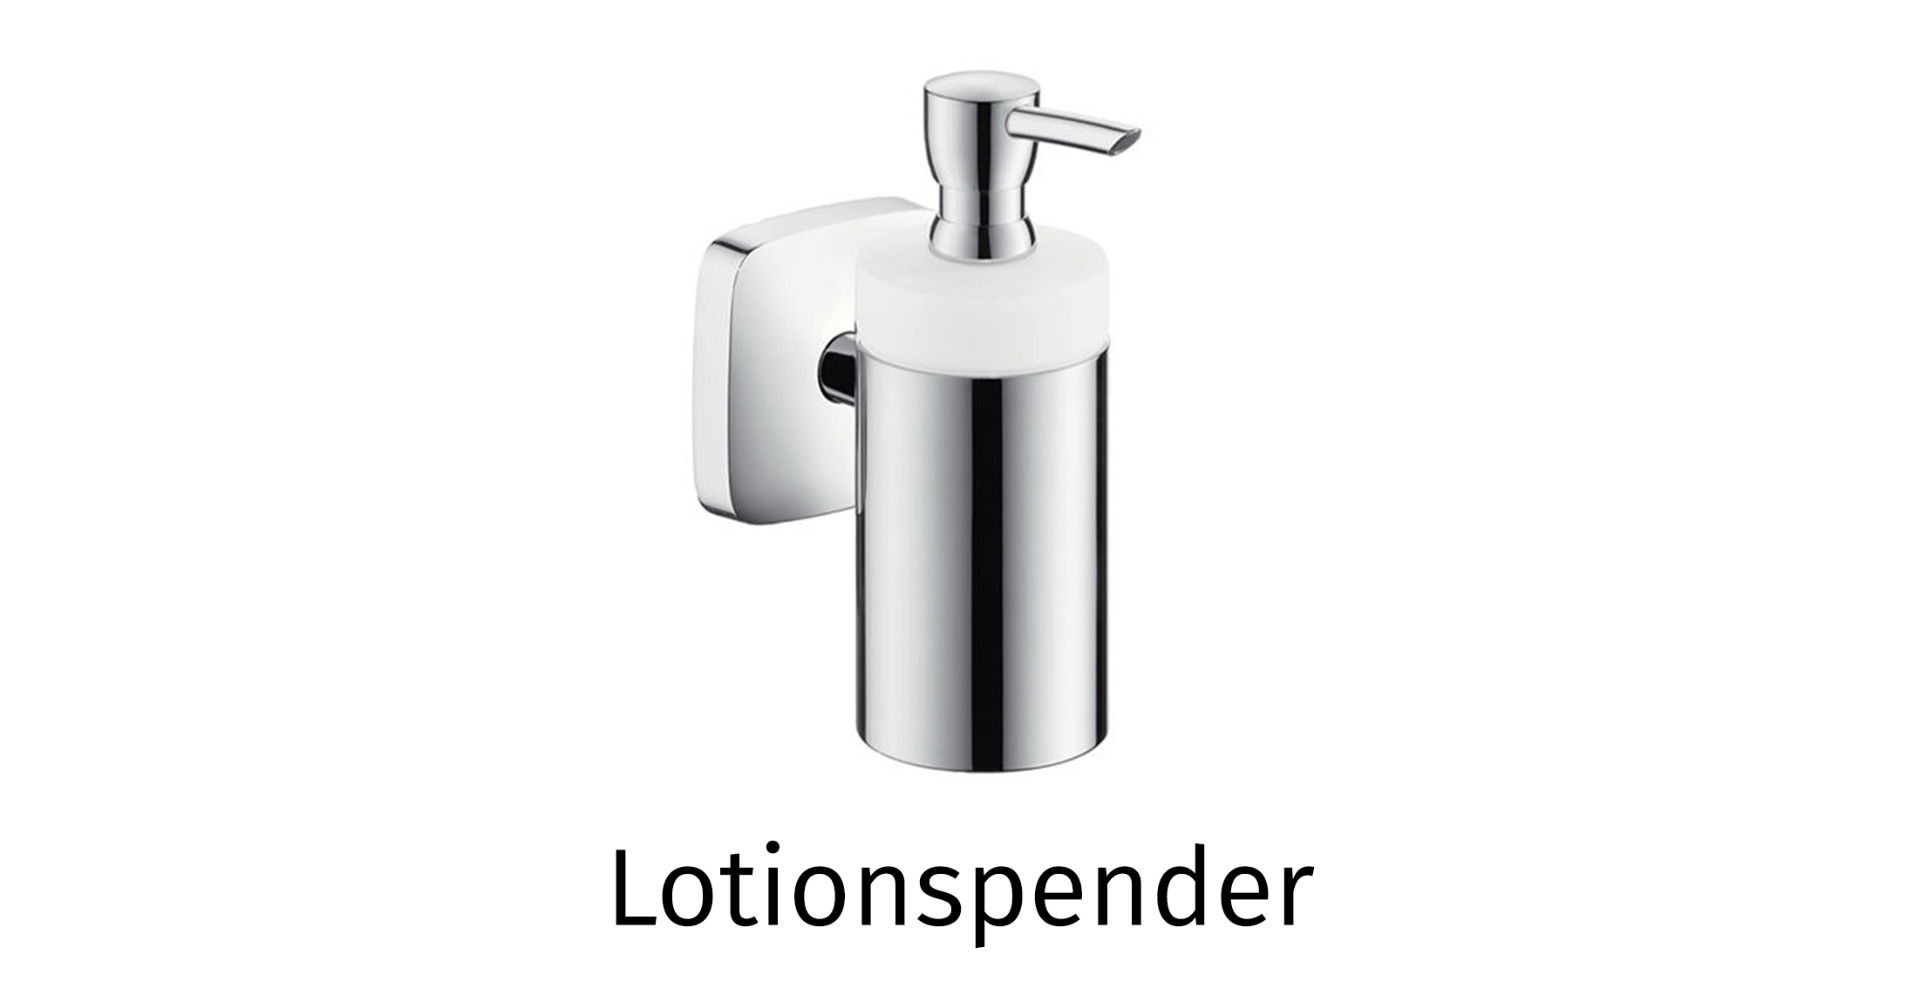 Lotionsspender